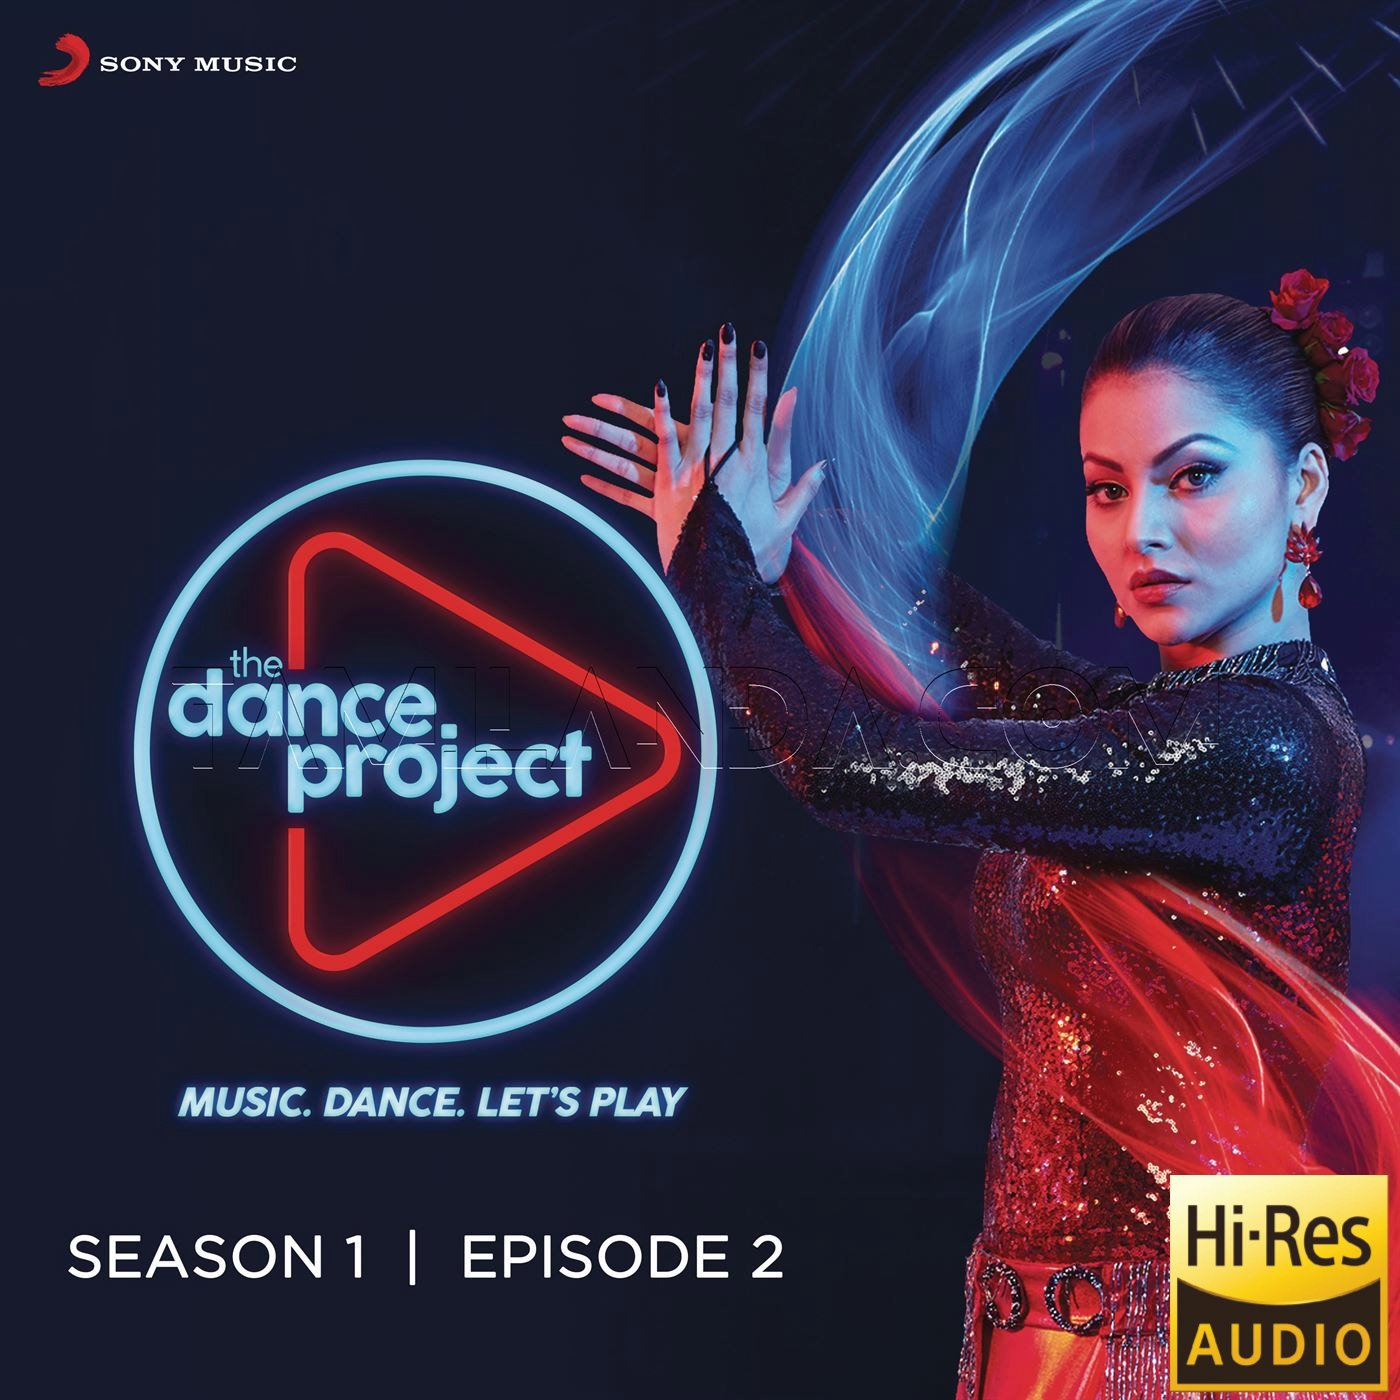 The Dance Project (Season 1: Episode 2) 24 BIT 48 KHZ